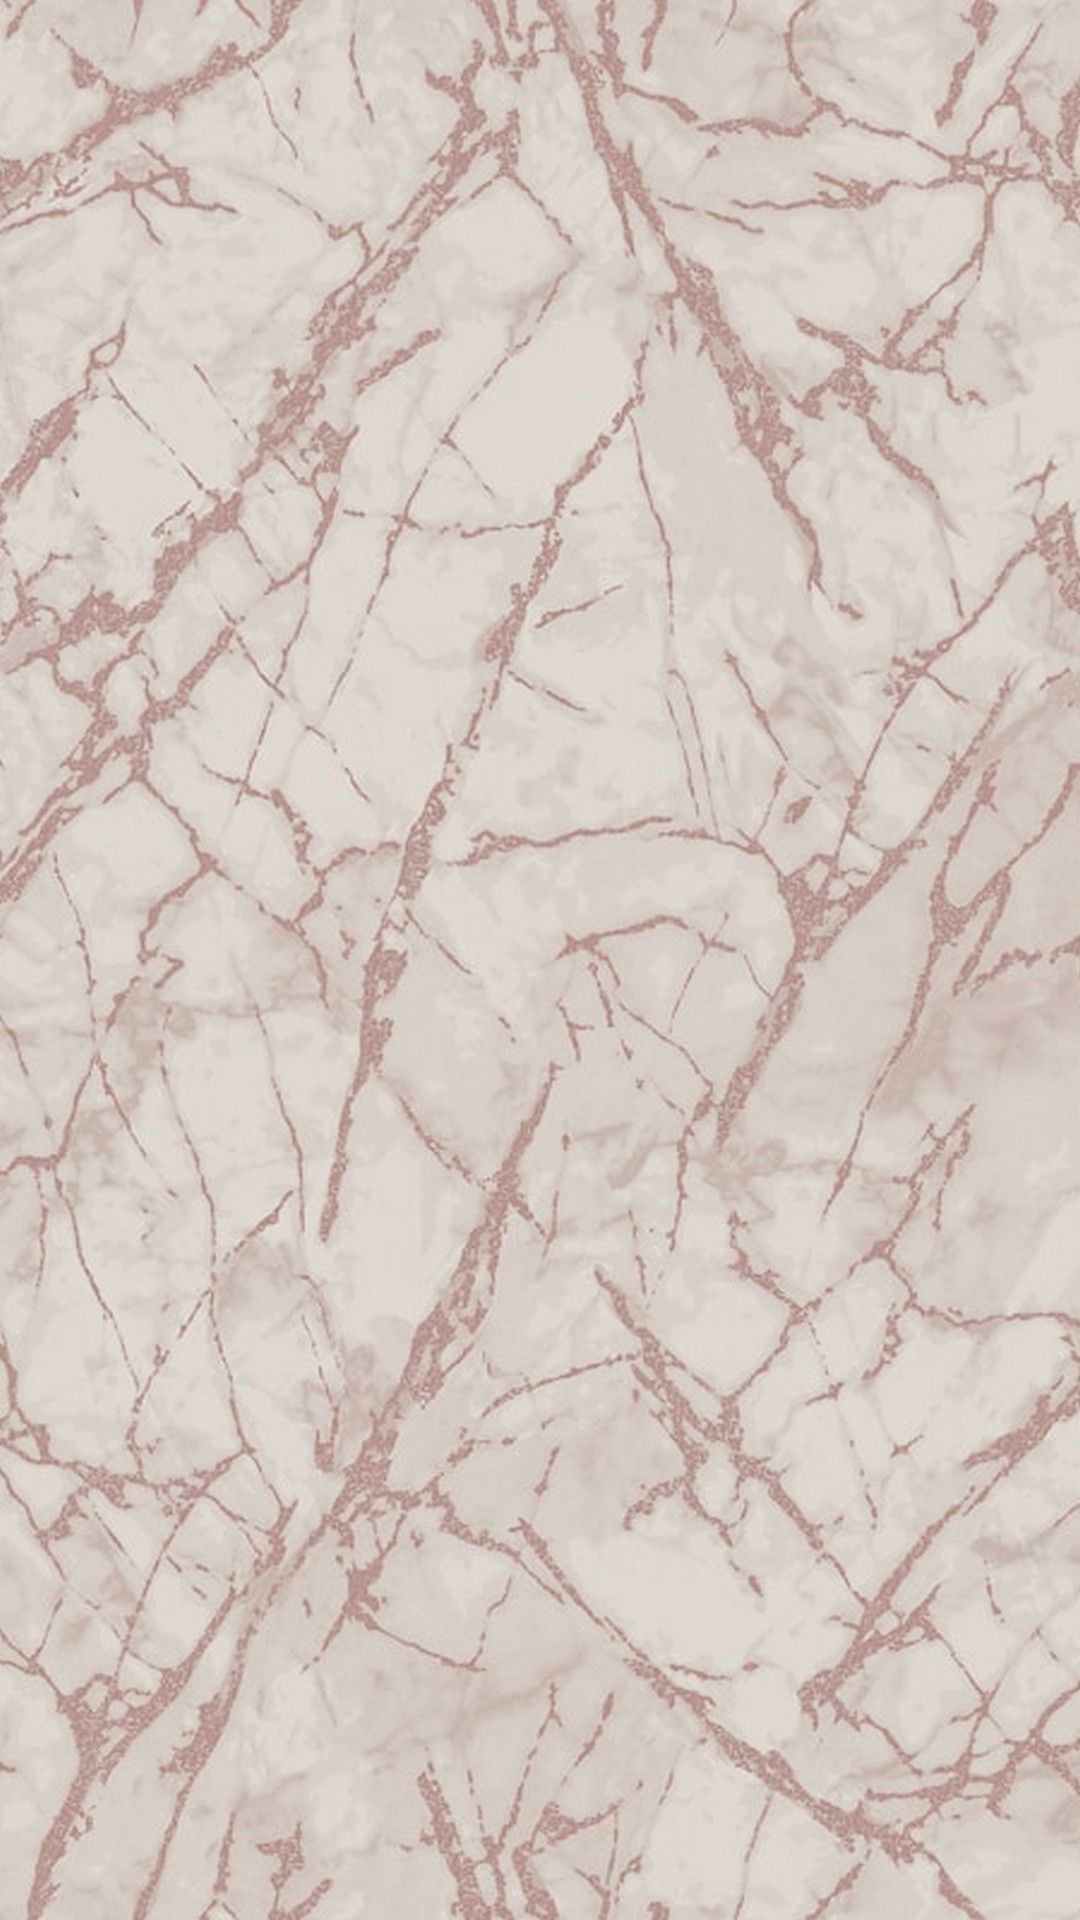 Rose Gold Marble Hd Wallpapers For Android 2018 Android